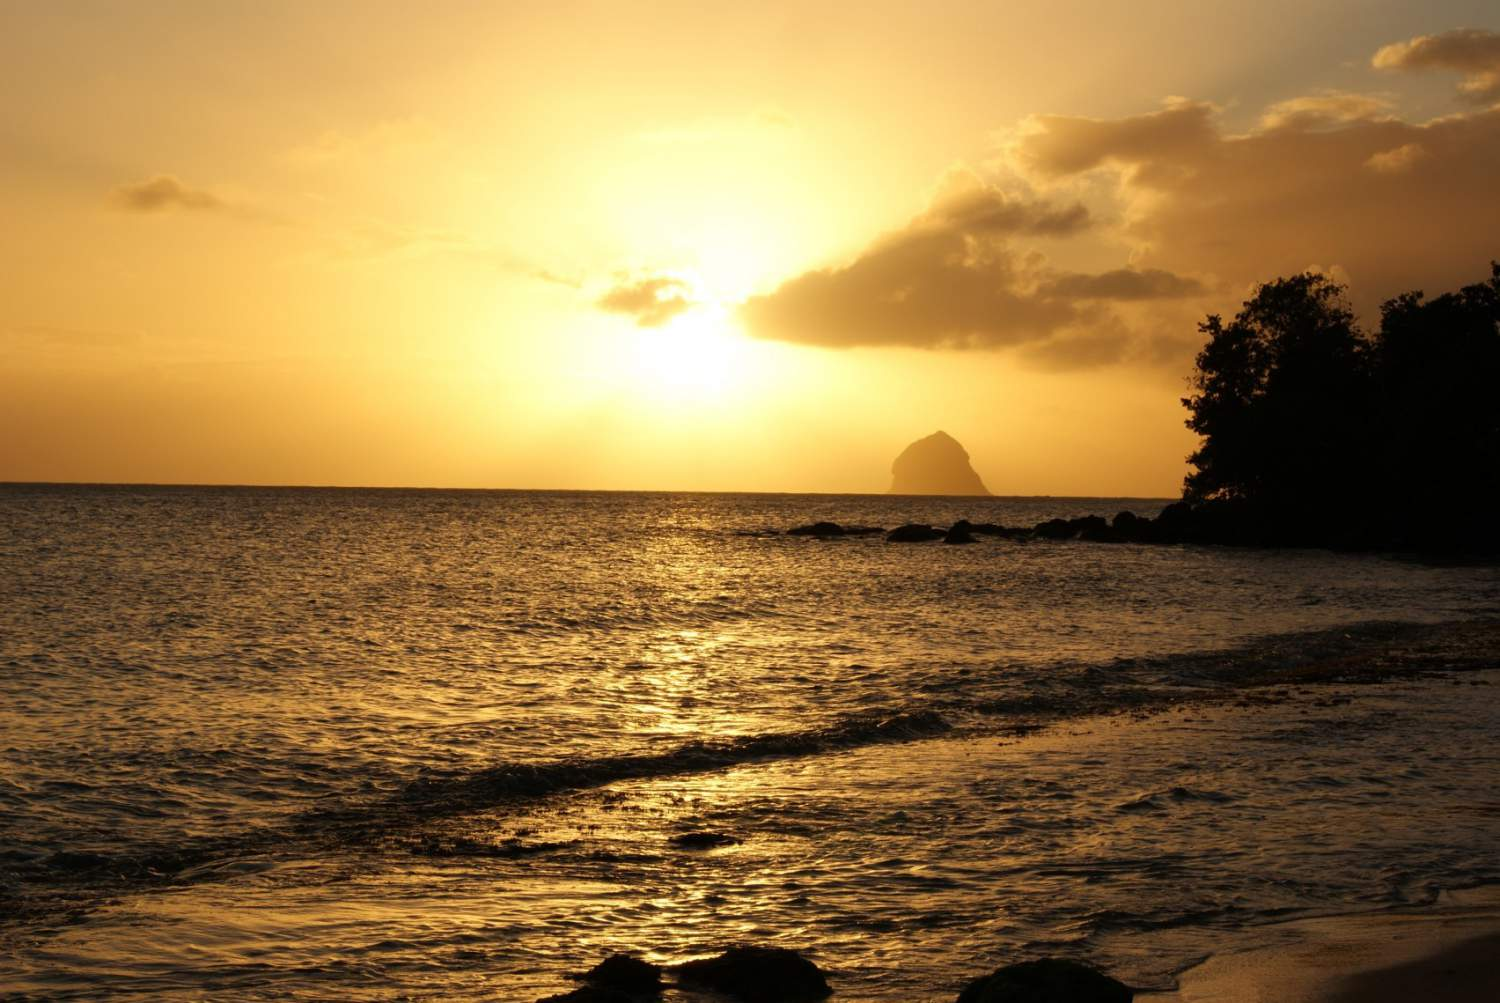 Sunset at the Diamond Rock, Martinique